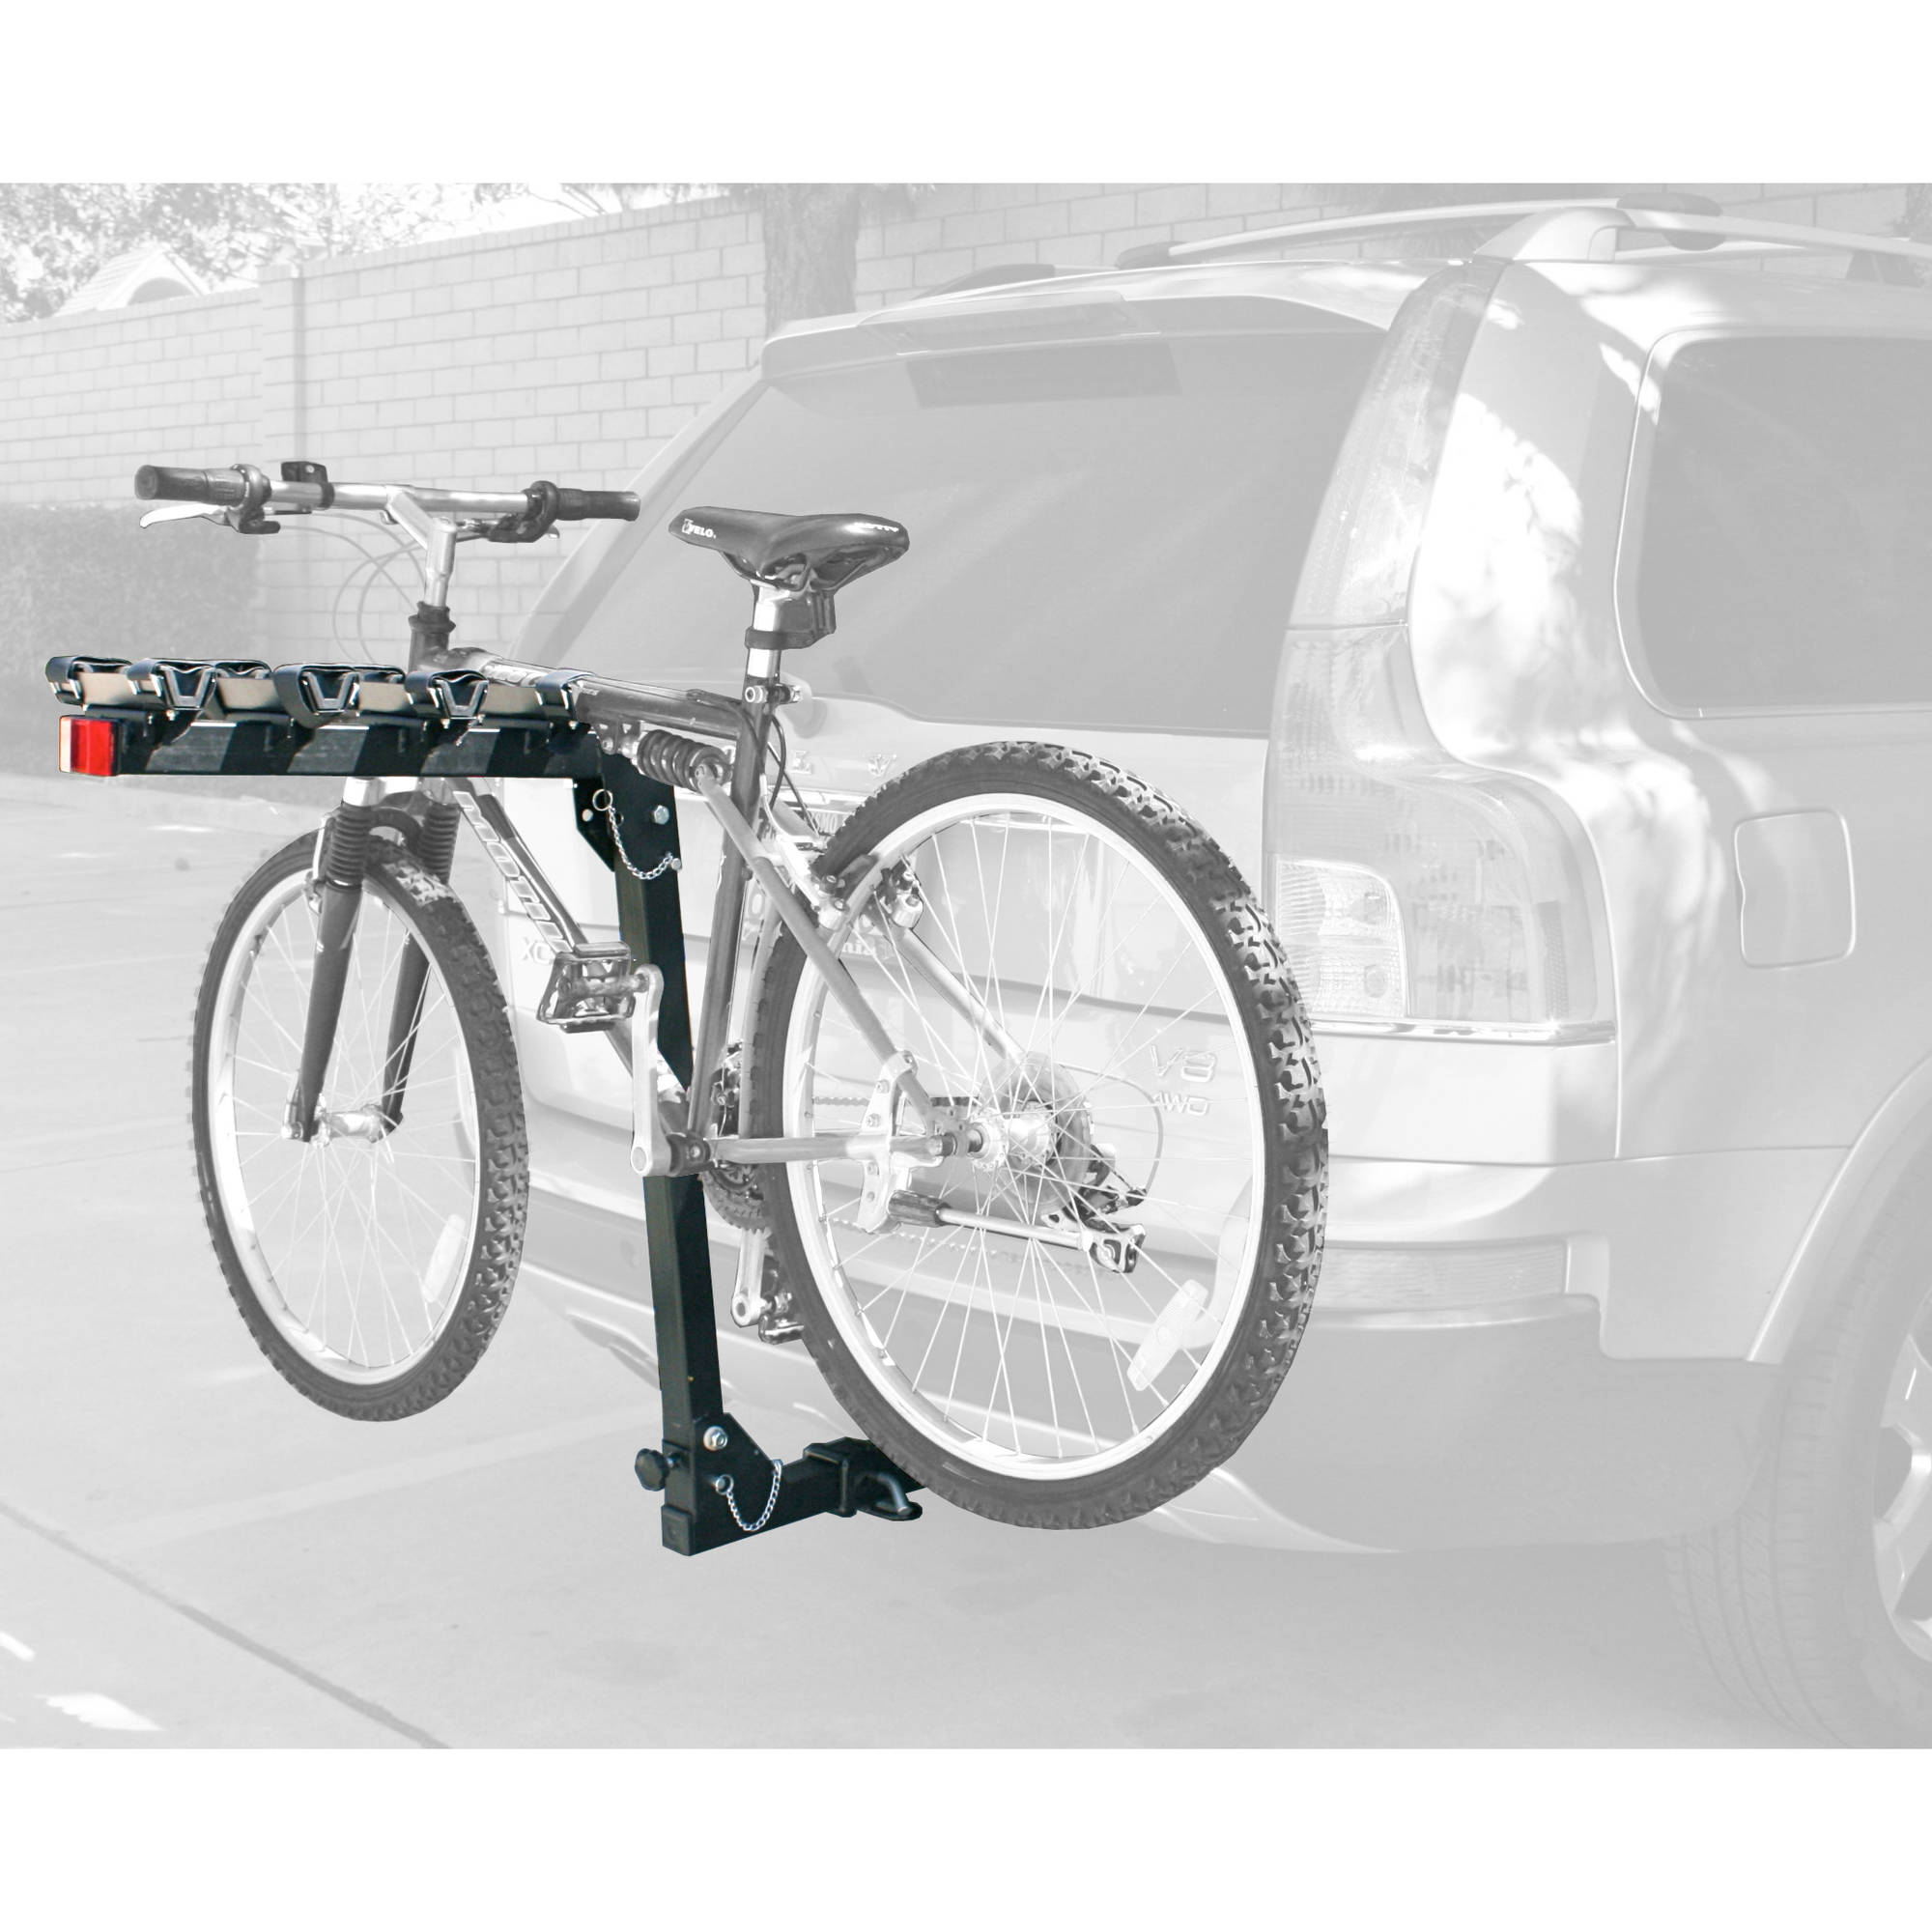 MaxWorks 70210 Hitch Mount 4-Bike Rack HD Series by MaxxHaul Towing Products